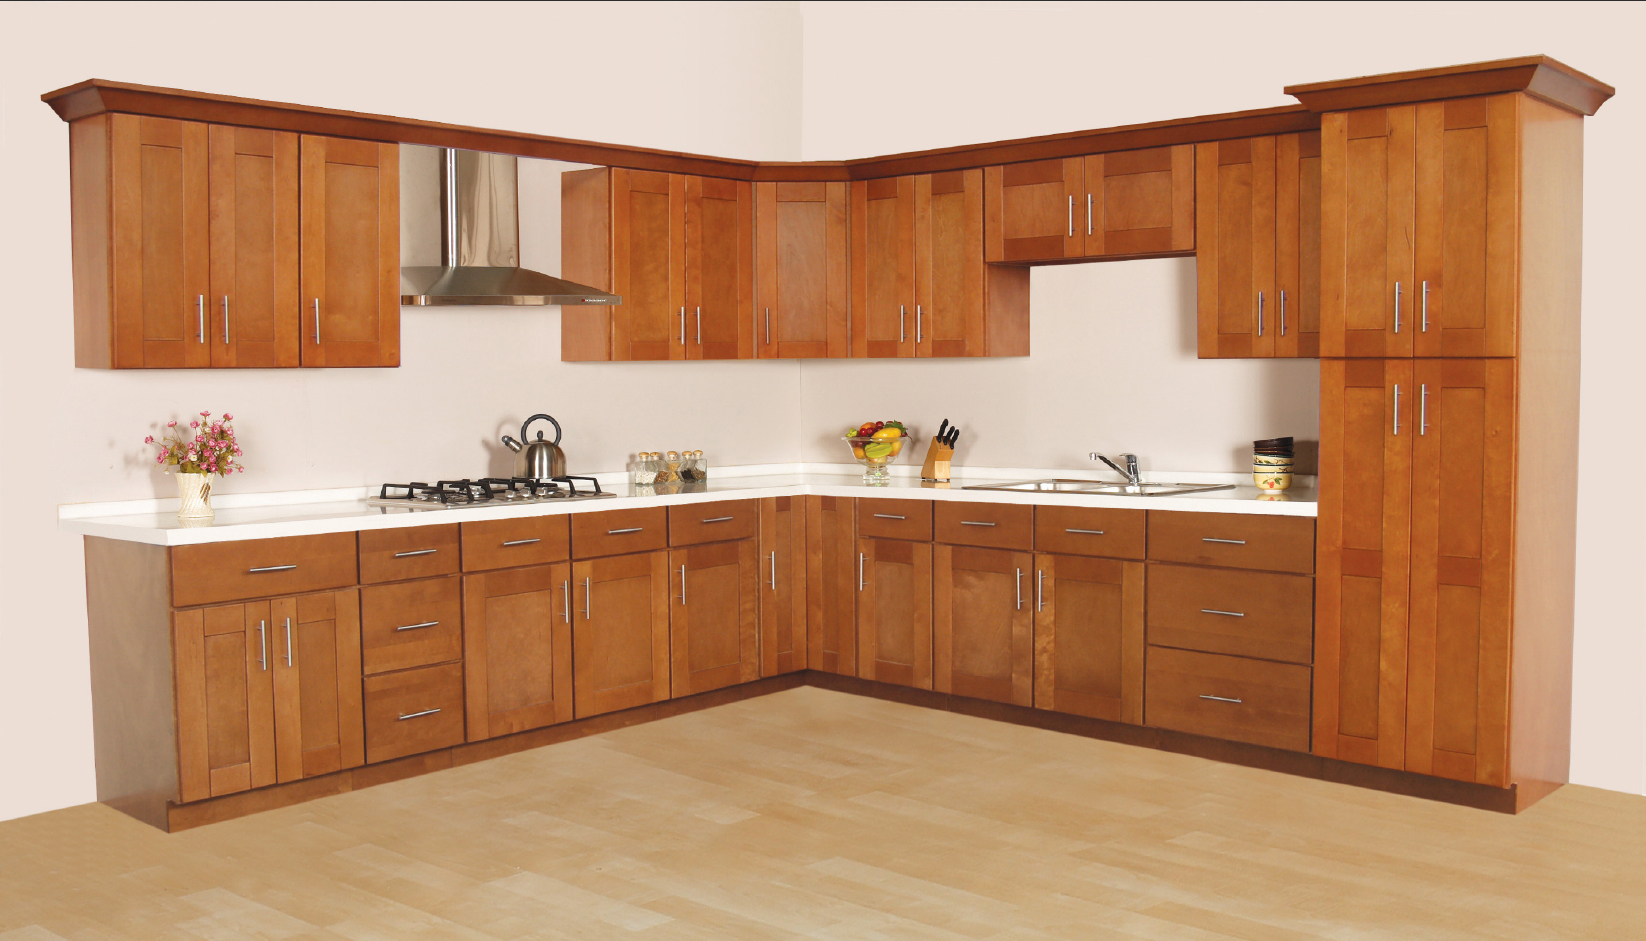 menards kitchen cabinet price and details home and cabinet reviews. Black Bedroom Furniture Sets. Home Design Ideas